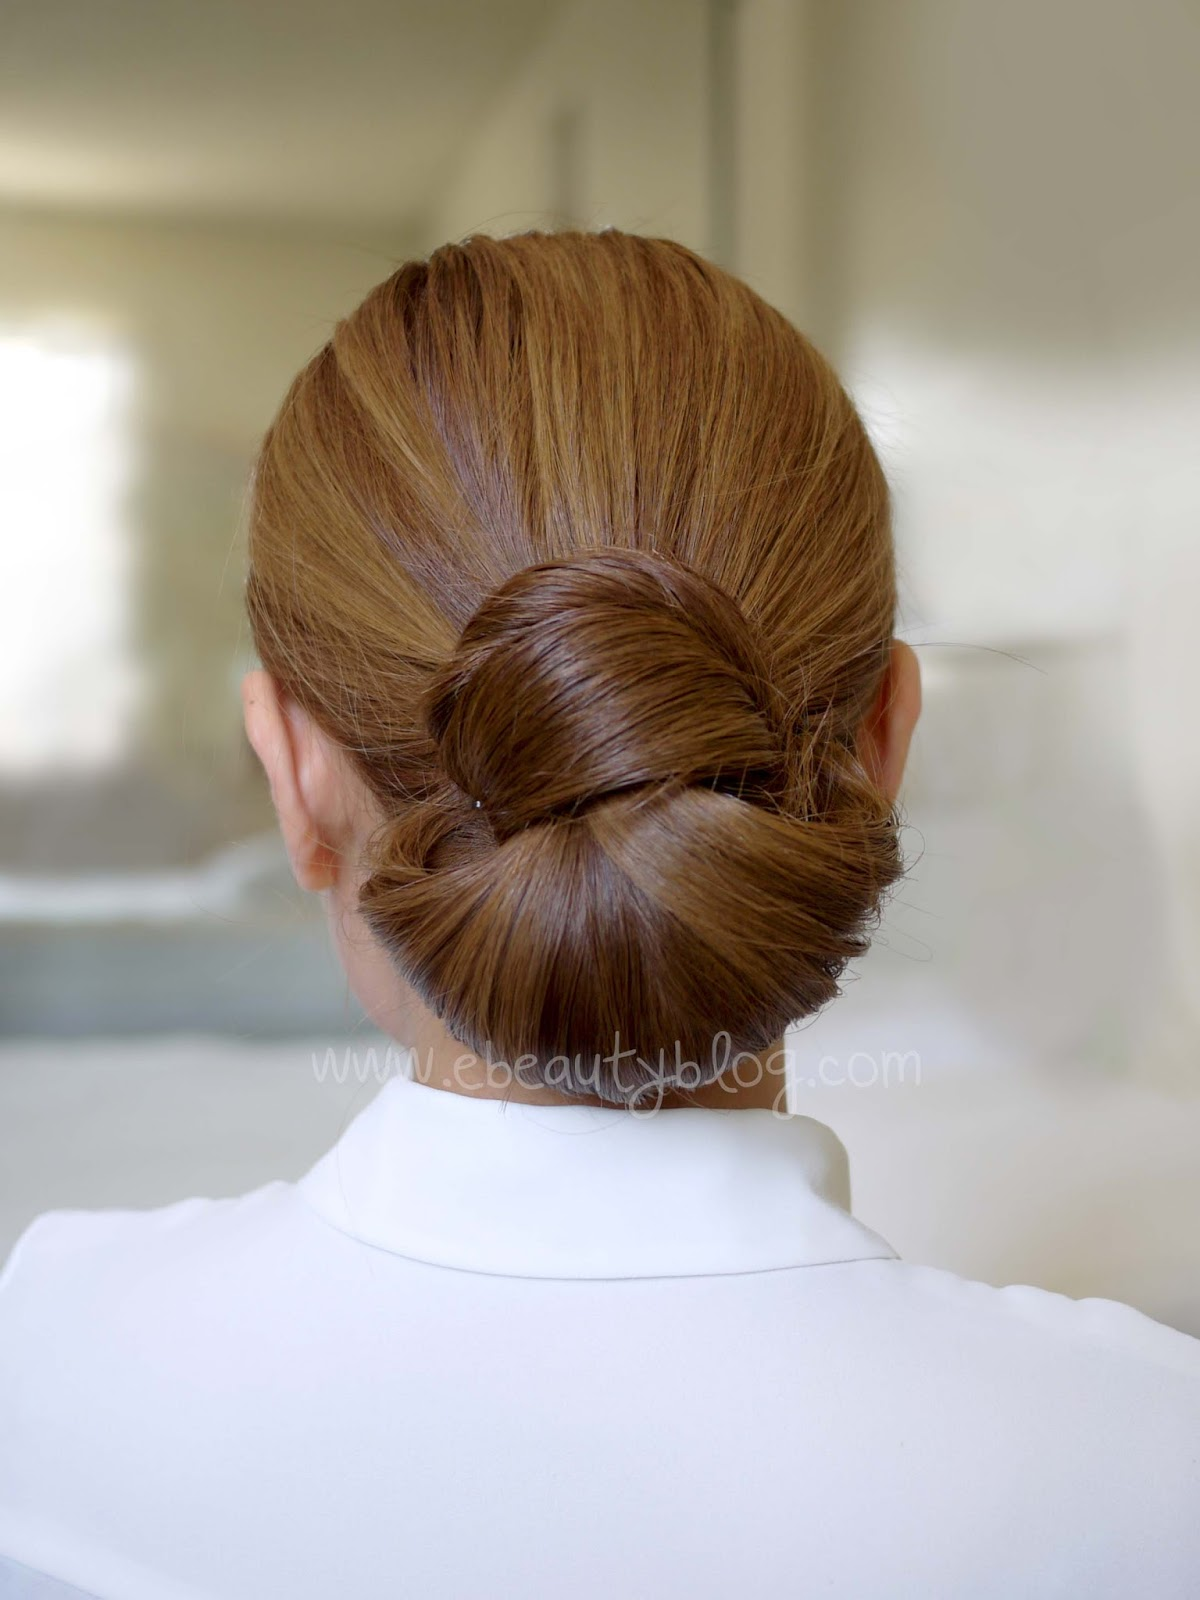 EbeautyBlog.com: Hair Tutorial: Easy Elegance Hair Bun